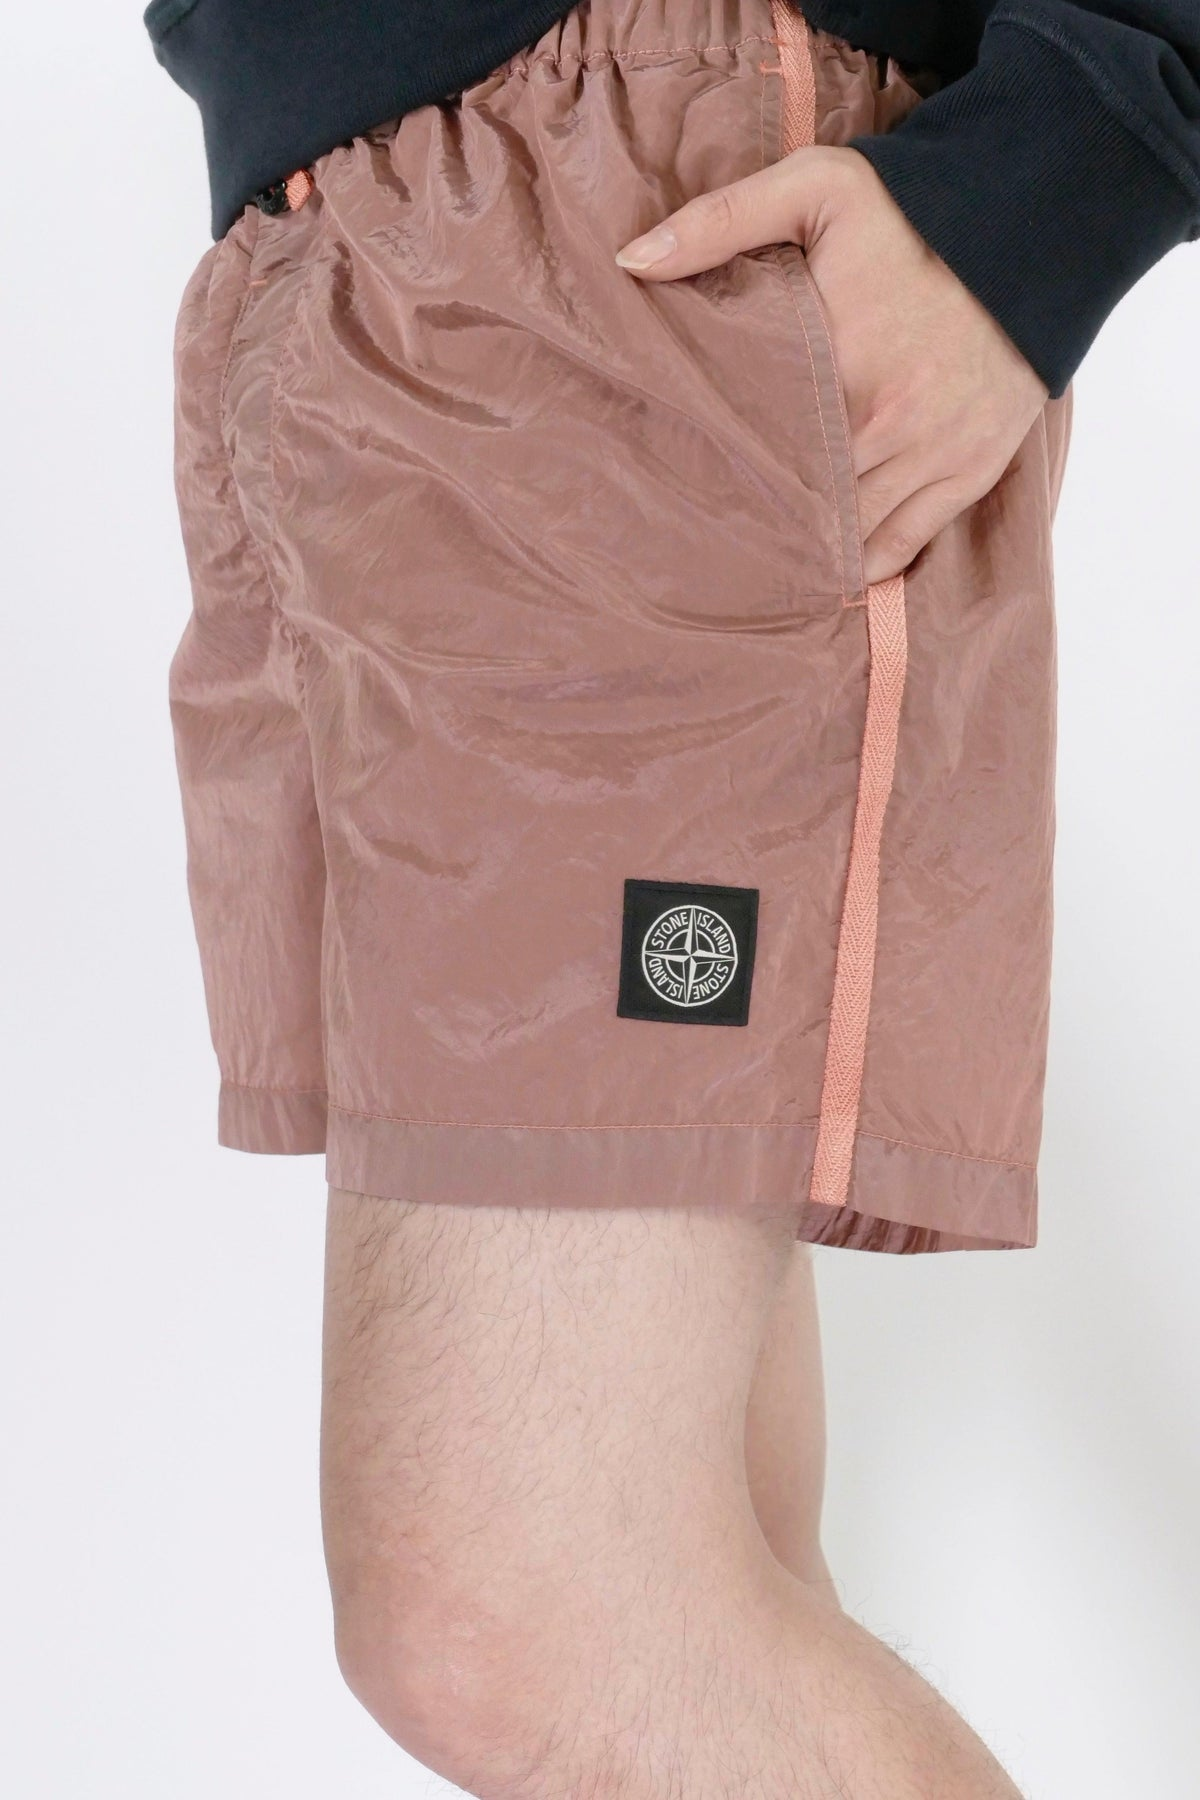 Stone Island Nylon Metal B0643 Swimshort - Rose Quartz